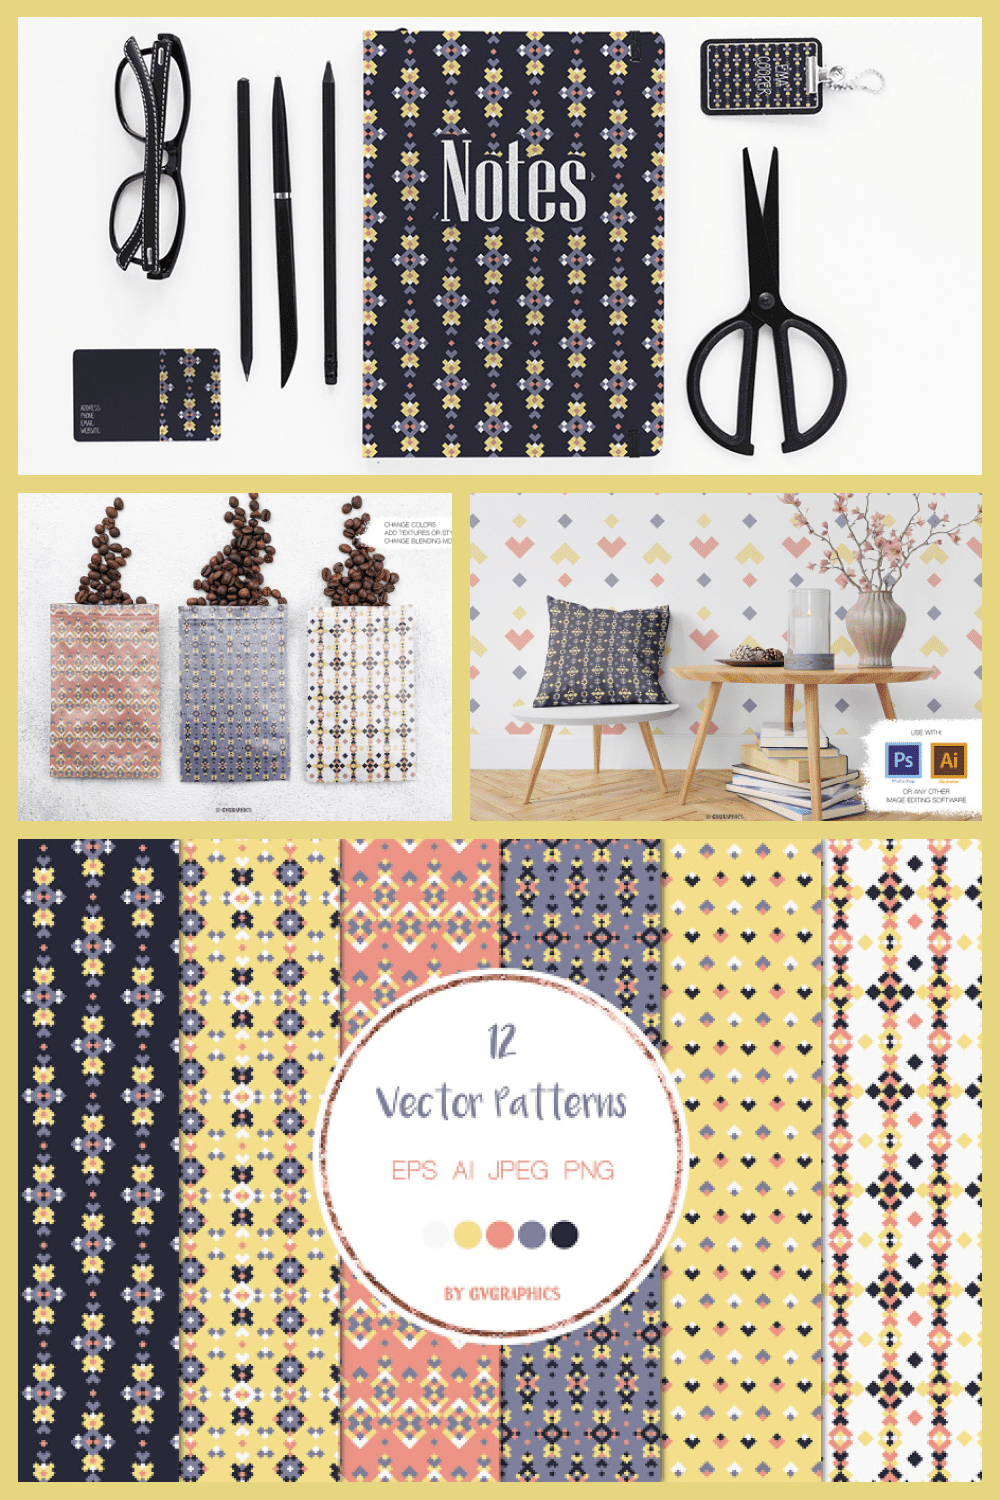 Colorful Geometric Tribal Vector Patterns and Seamless Tiles - MasterBundles - Pinterest Collage Image.